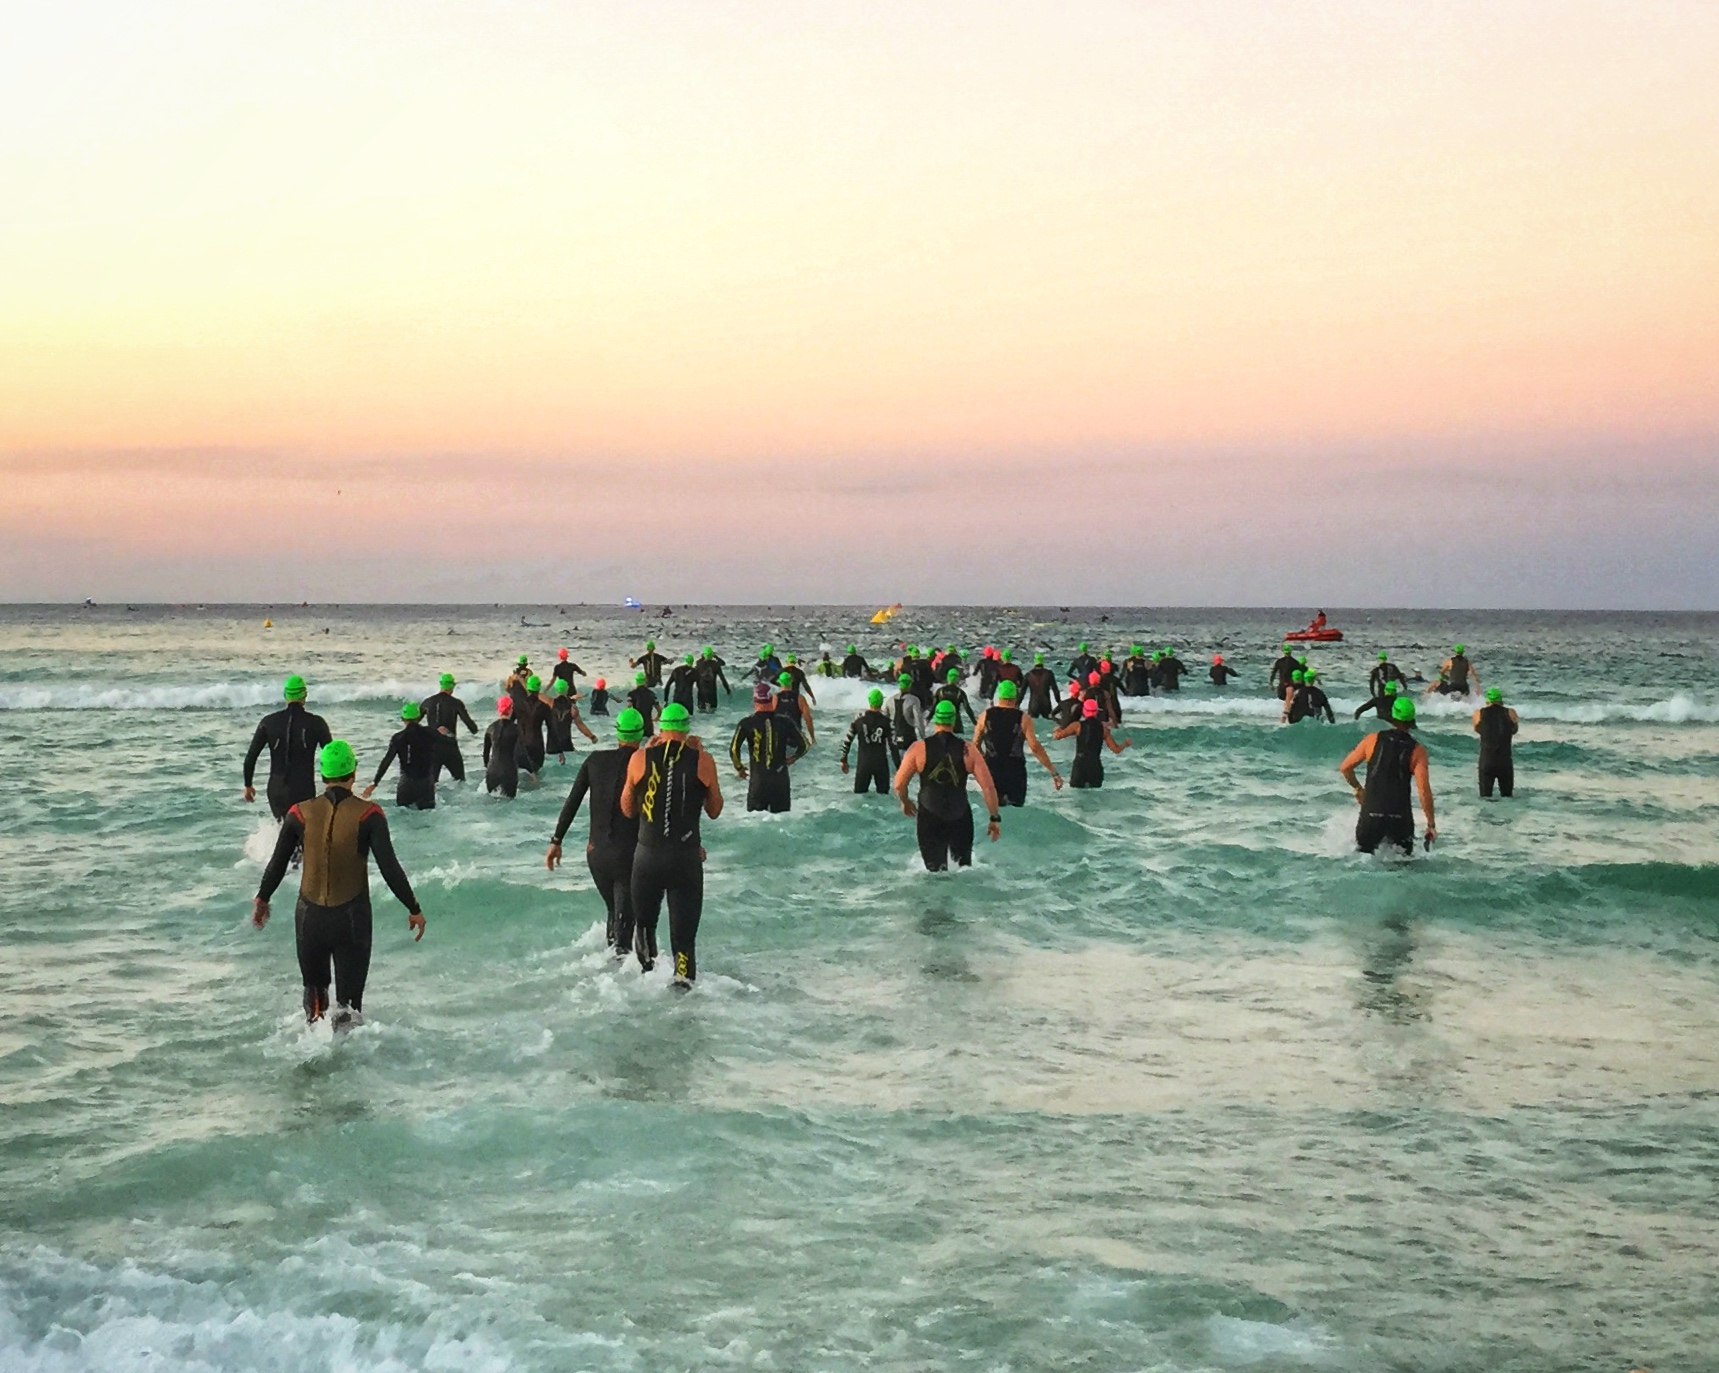 Iron Man athletes heading out into the ocean for the 2.4 mile swim